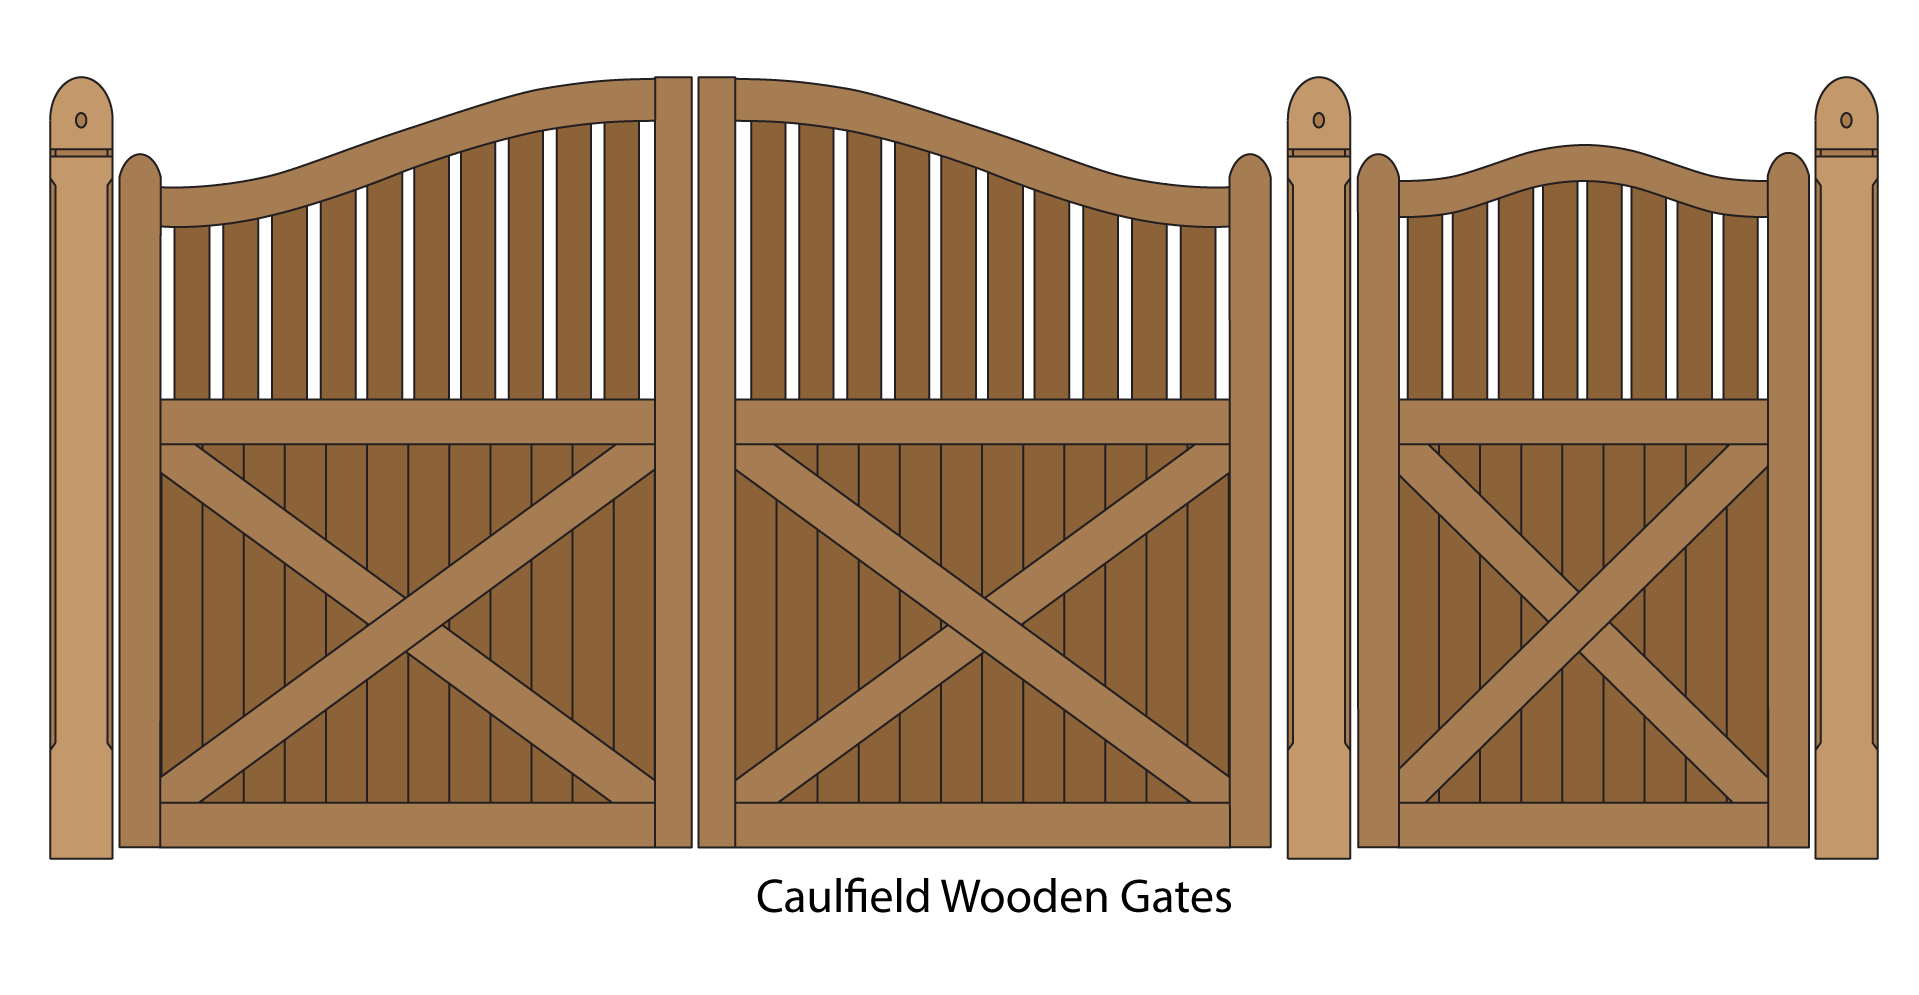 Caulfield Wooden driveway and pedestrian entrance gates